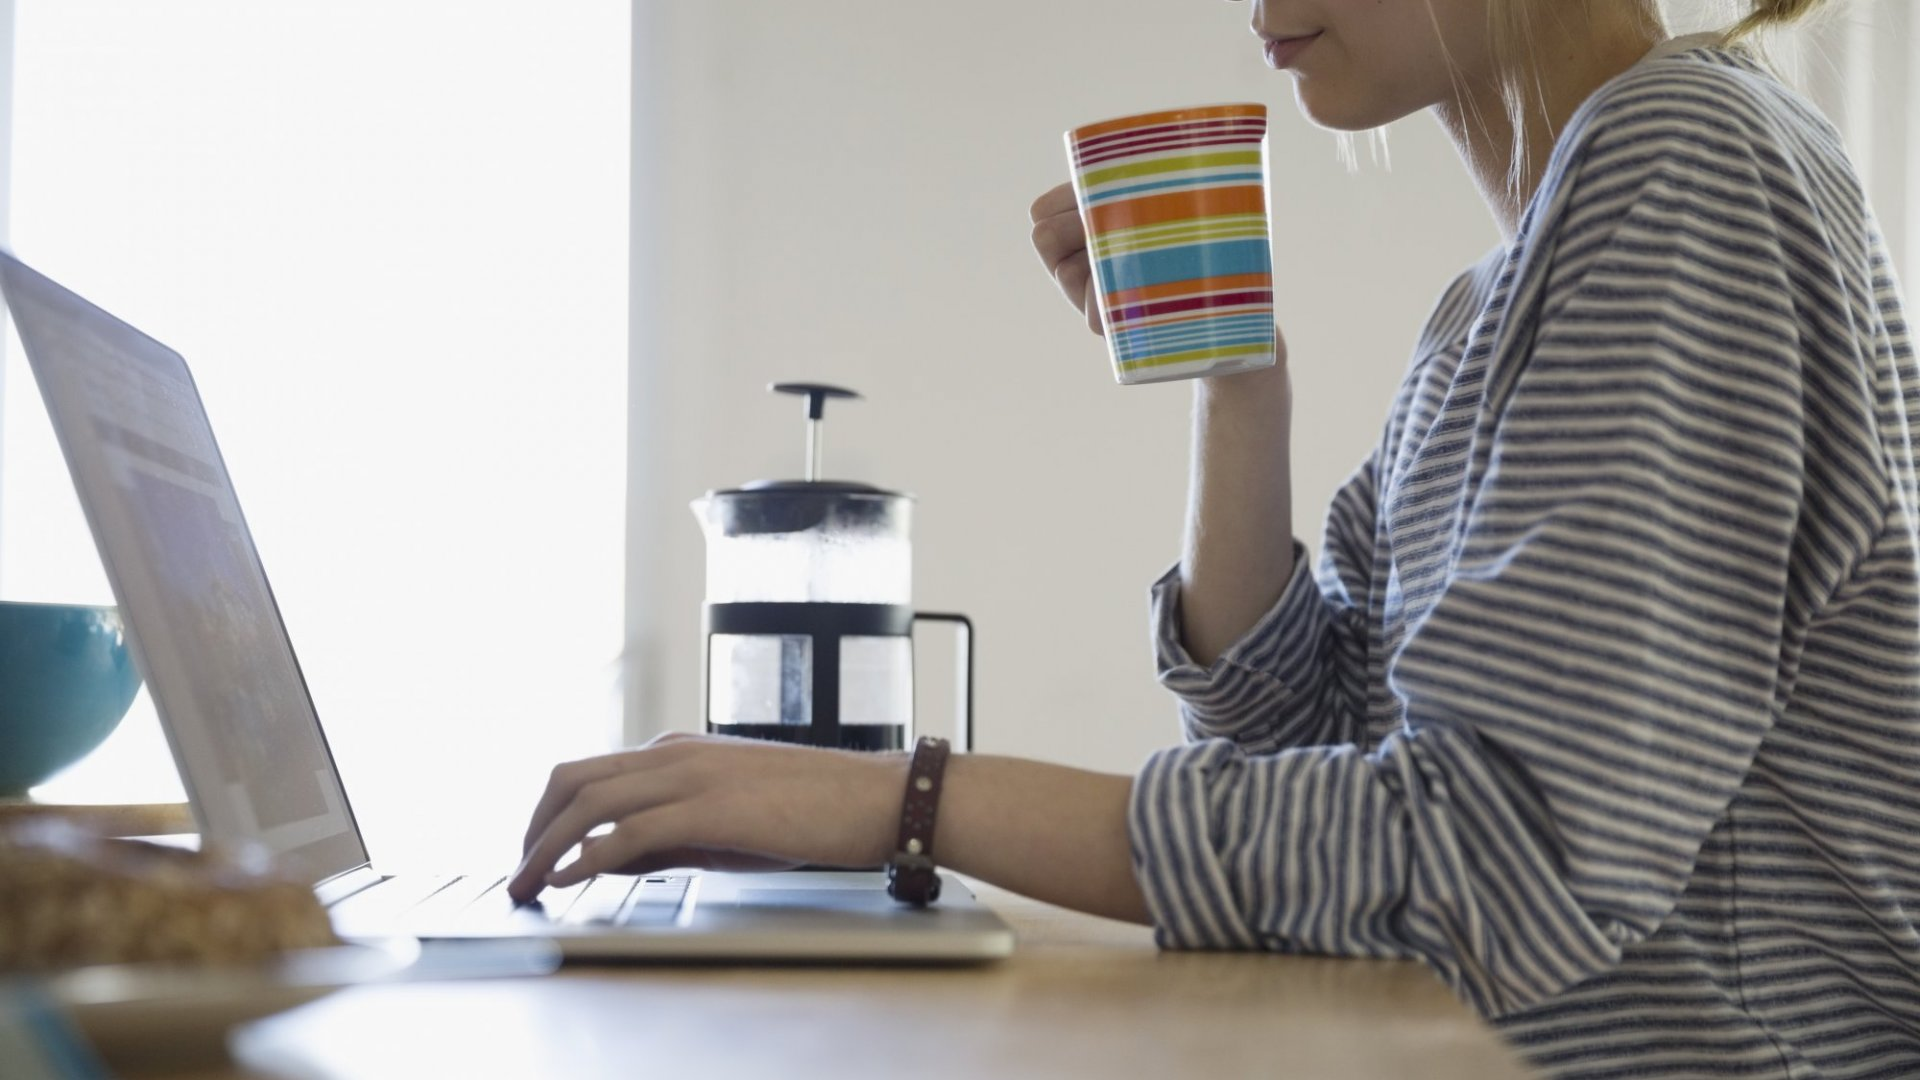 According to Science, You Should Schedule Your Focus Time Between These Hours